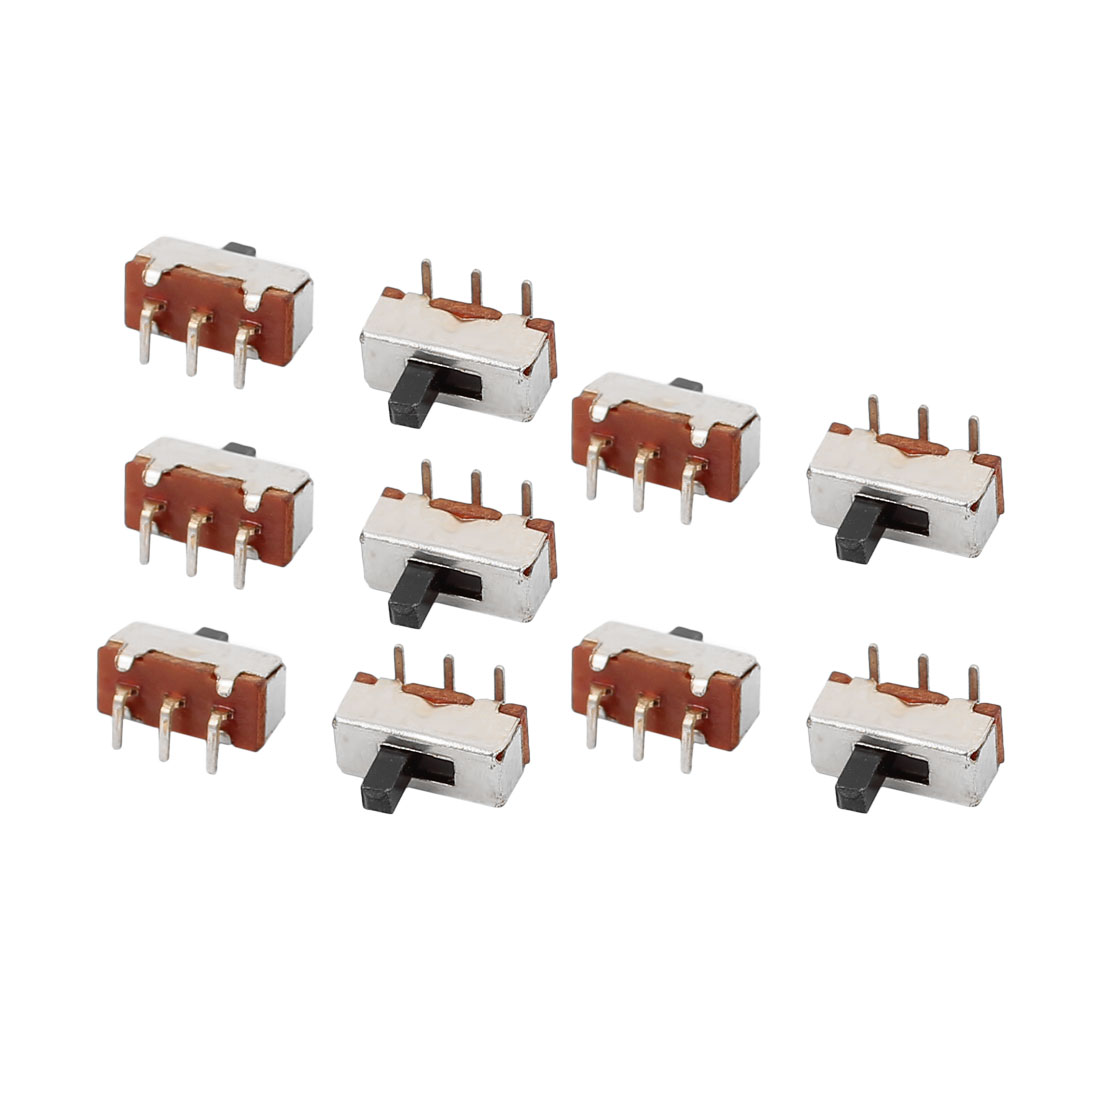 10Pcs DC50V 0.5A 2 Position 3 Terminals SPDT Slide Switch Latching Toy Switch